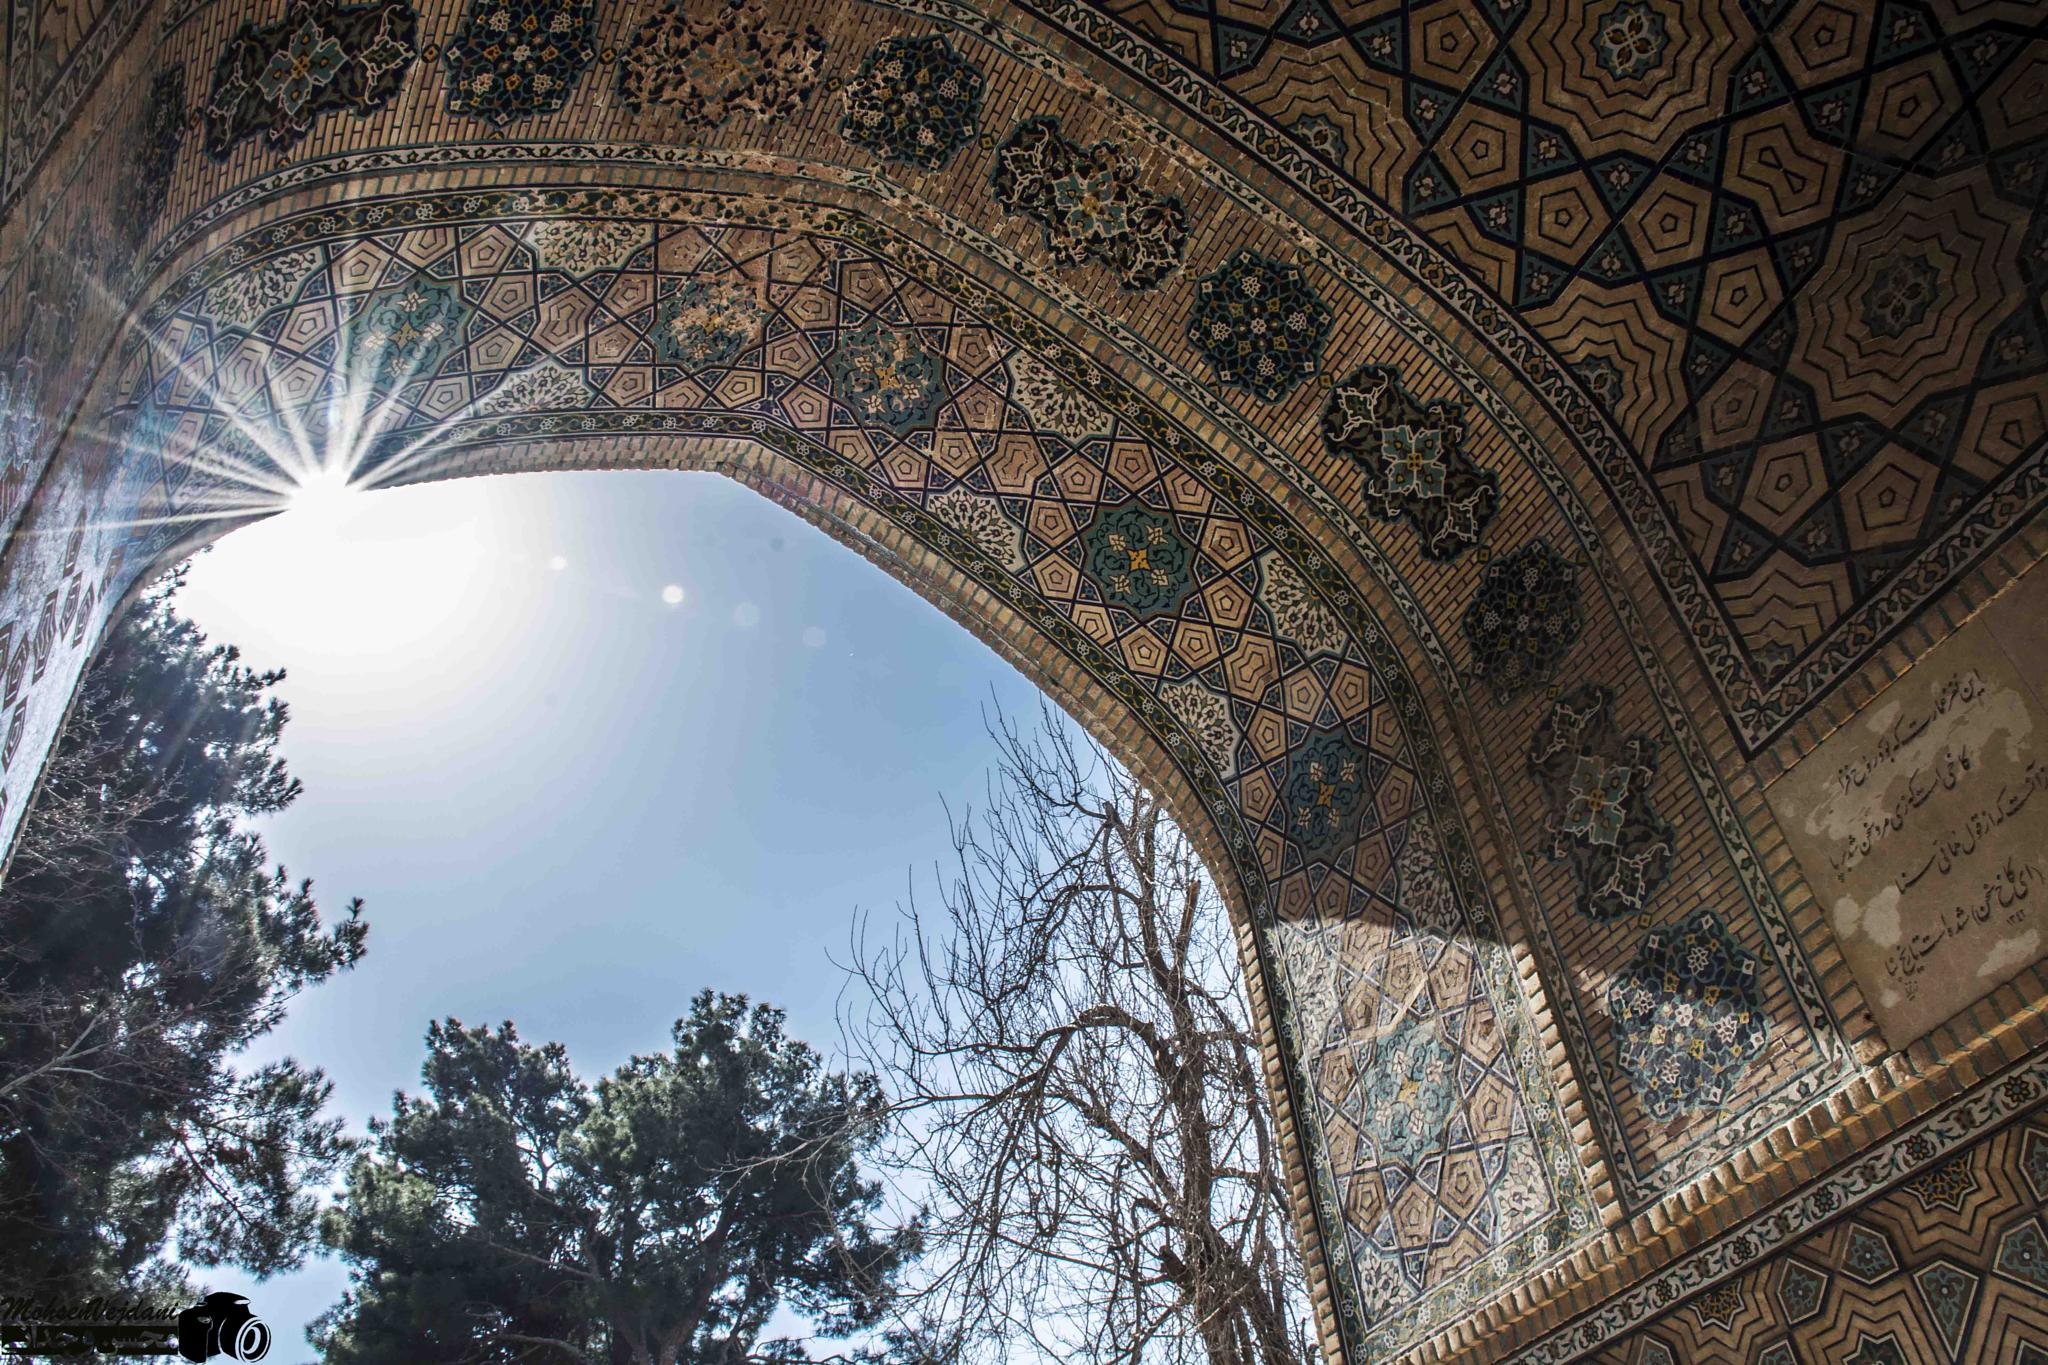 mosque in iran  by Mohsen Vejdany